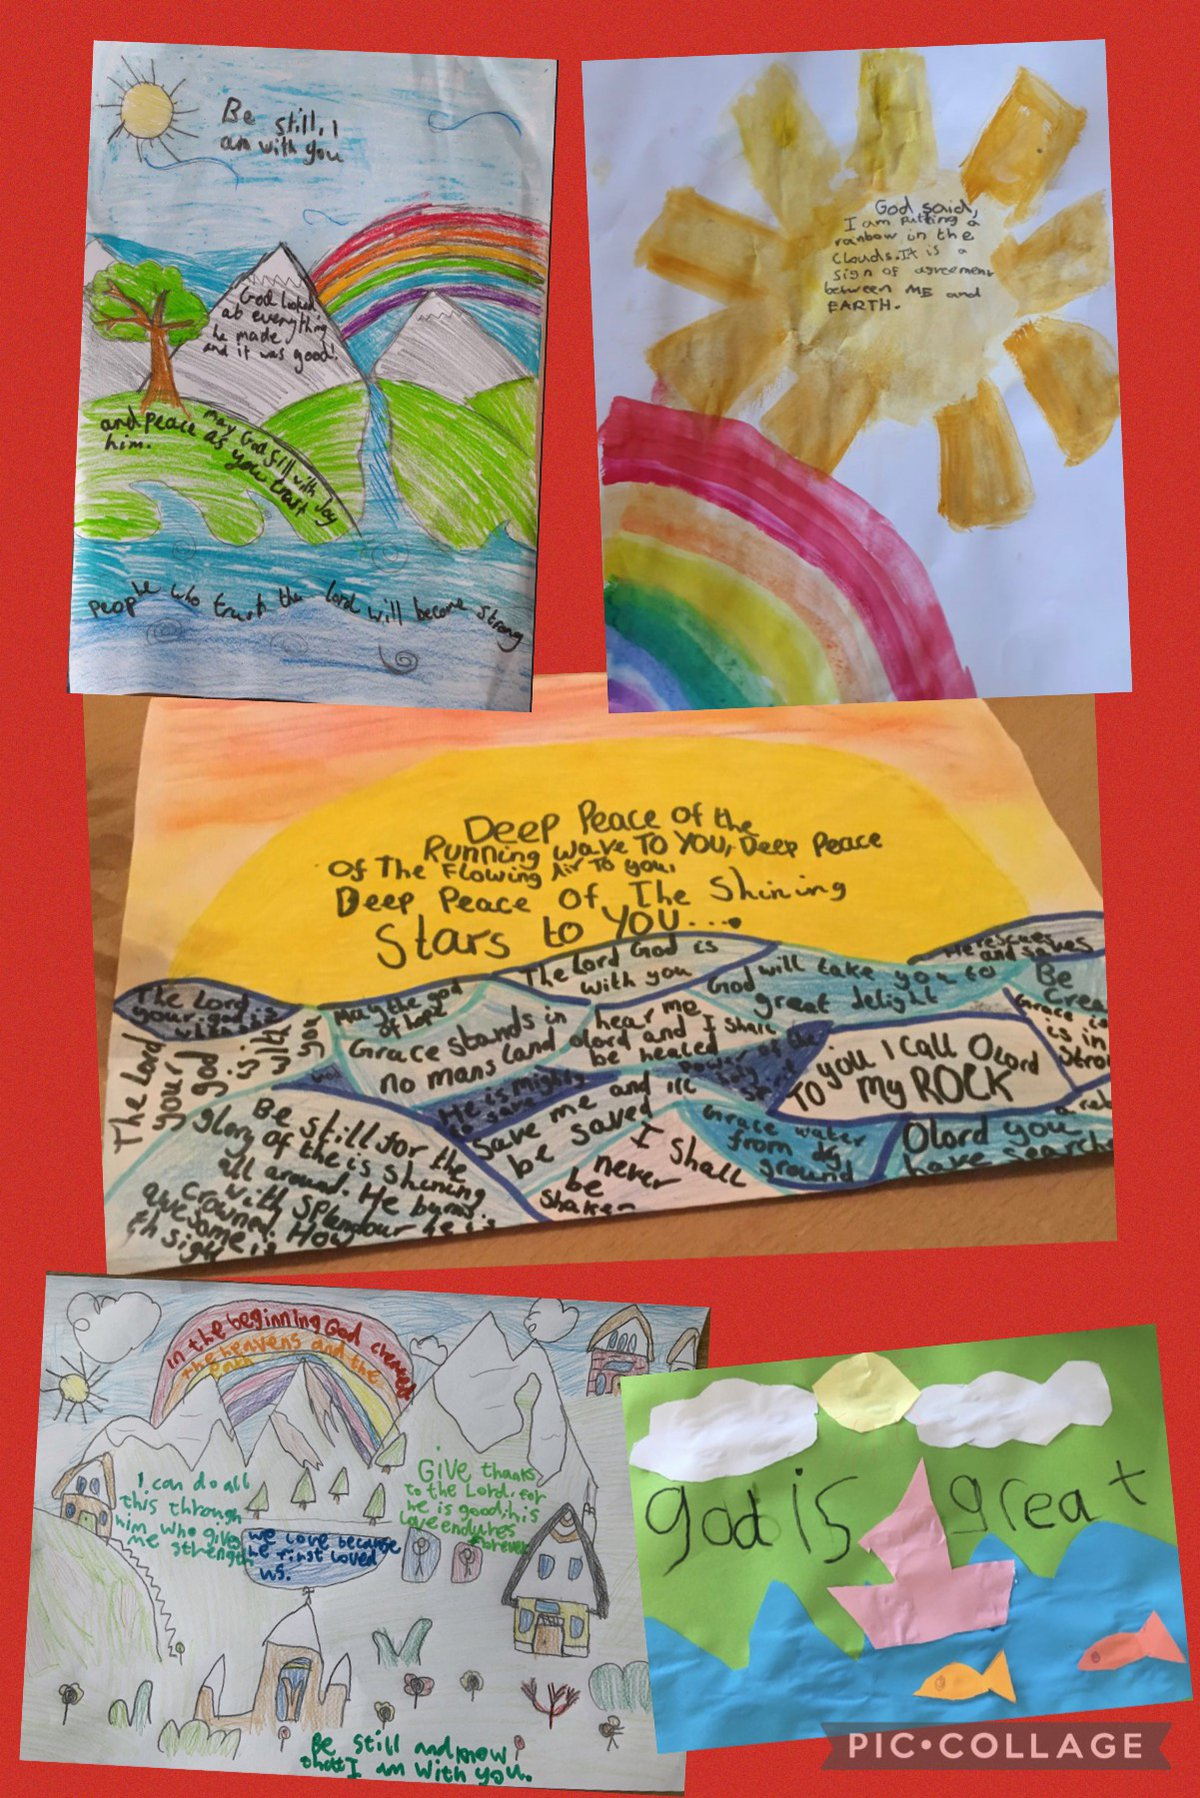 Young children's colourful artwork based on Christian artist